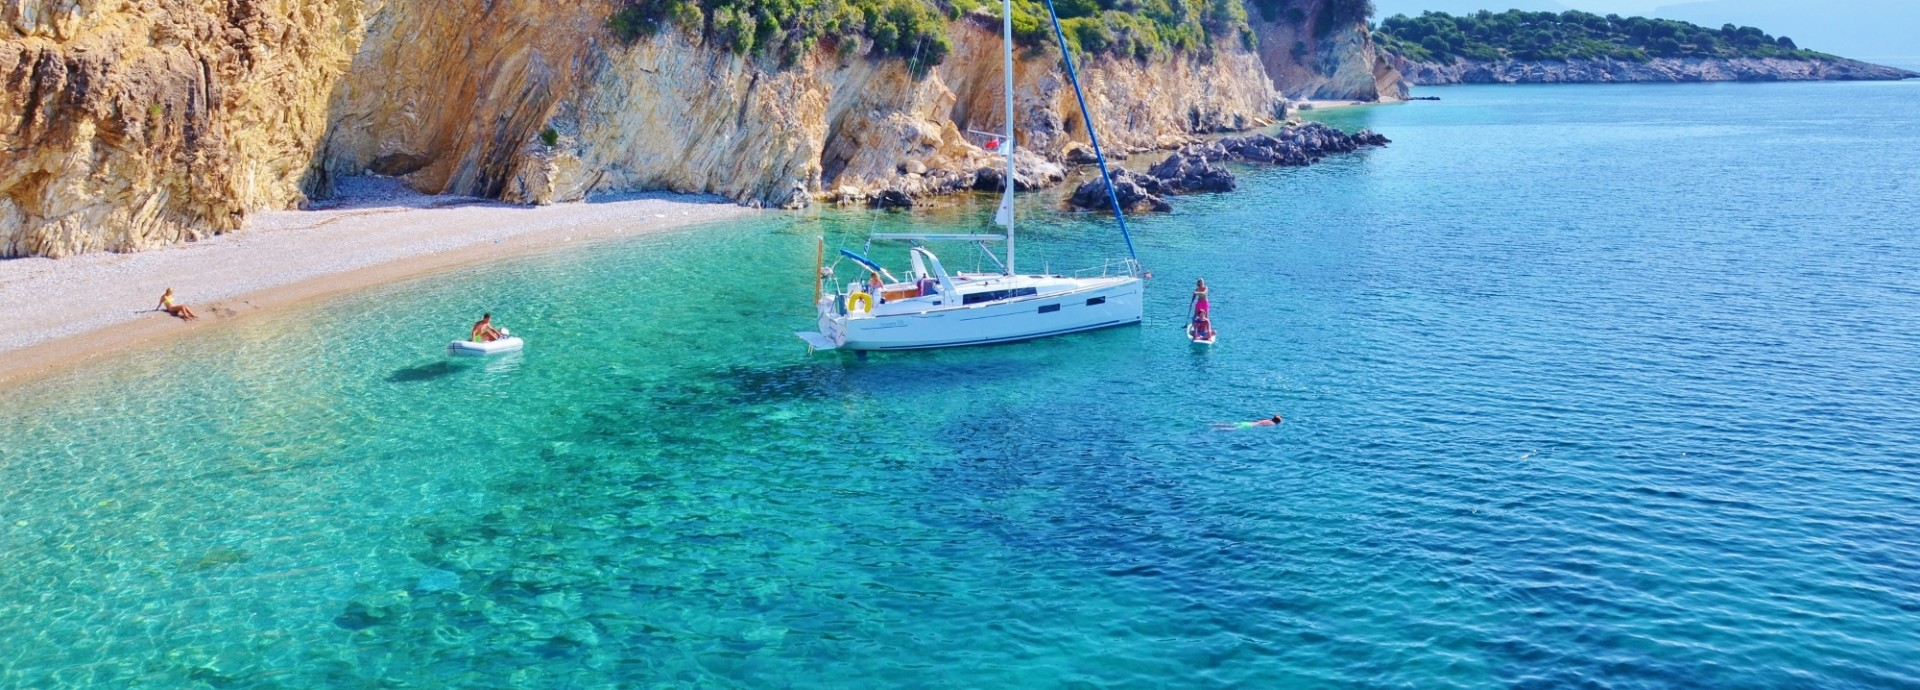 Beneteau Oceanis 38 nchored in the South Ionian Islands